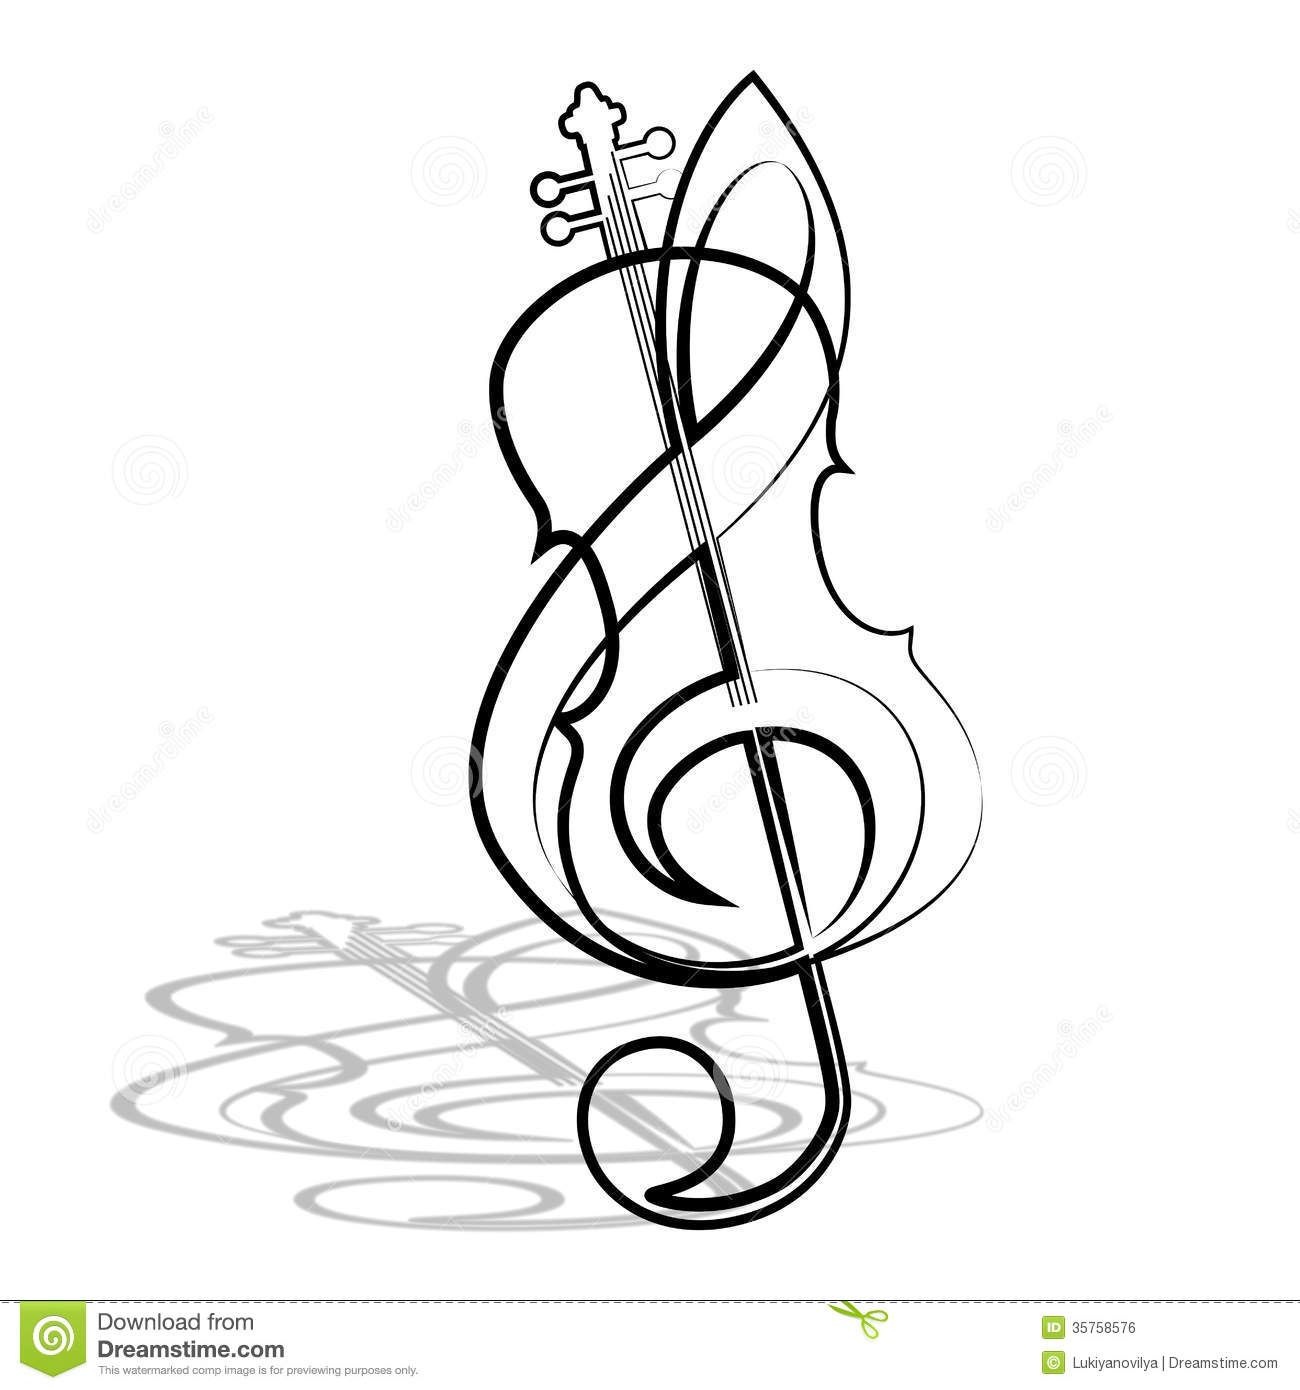 Violin And Treble Clef Download From Over 52 Million High Quality